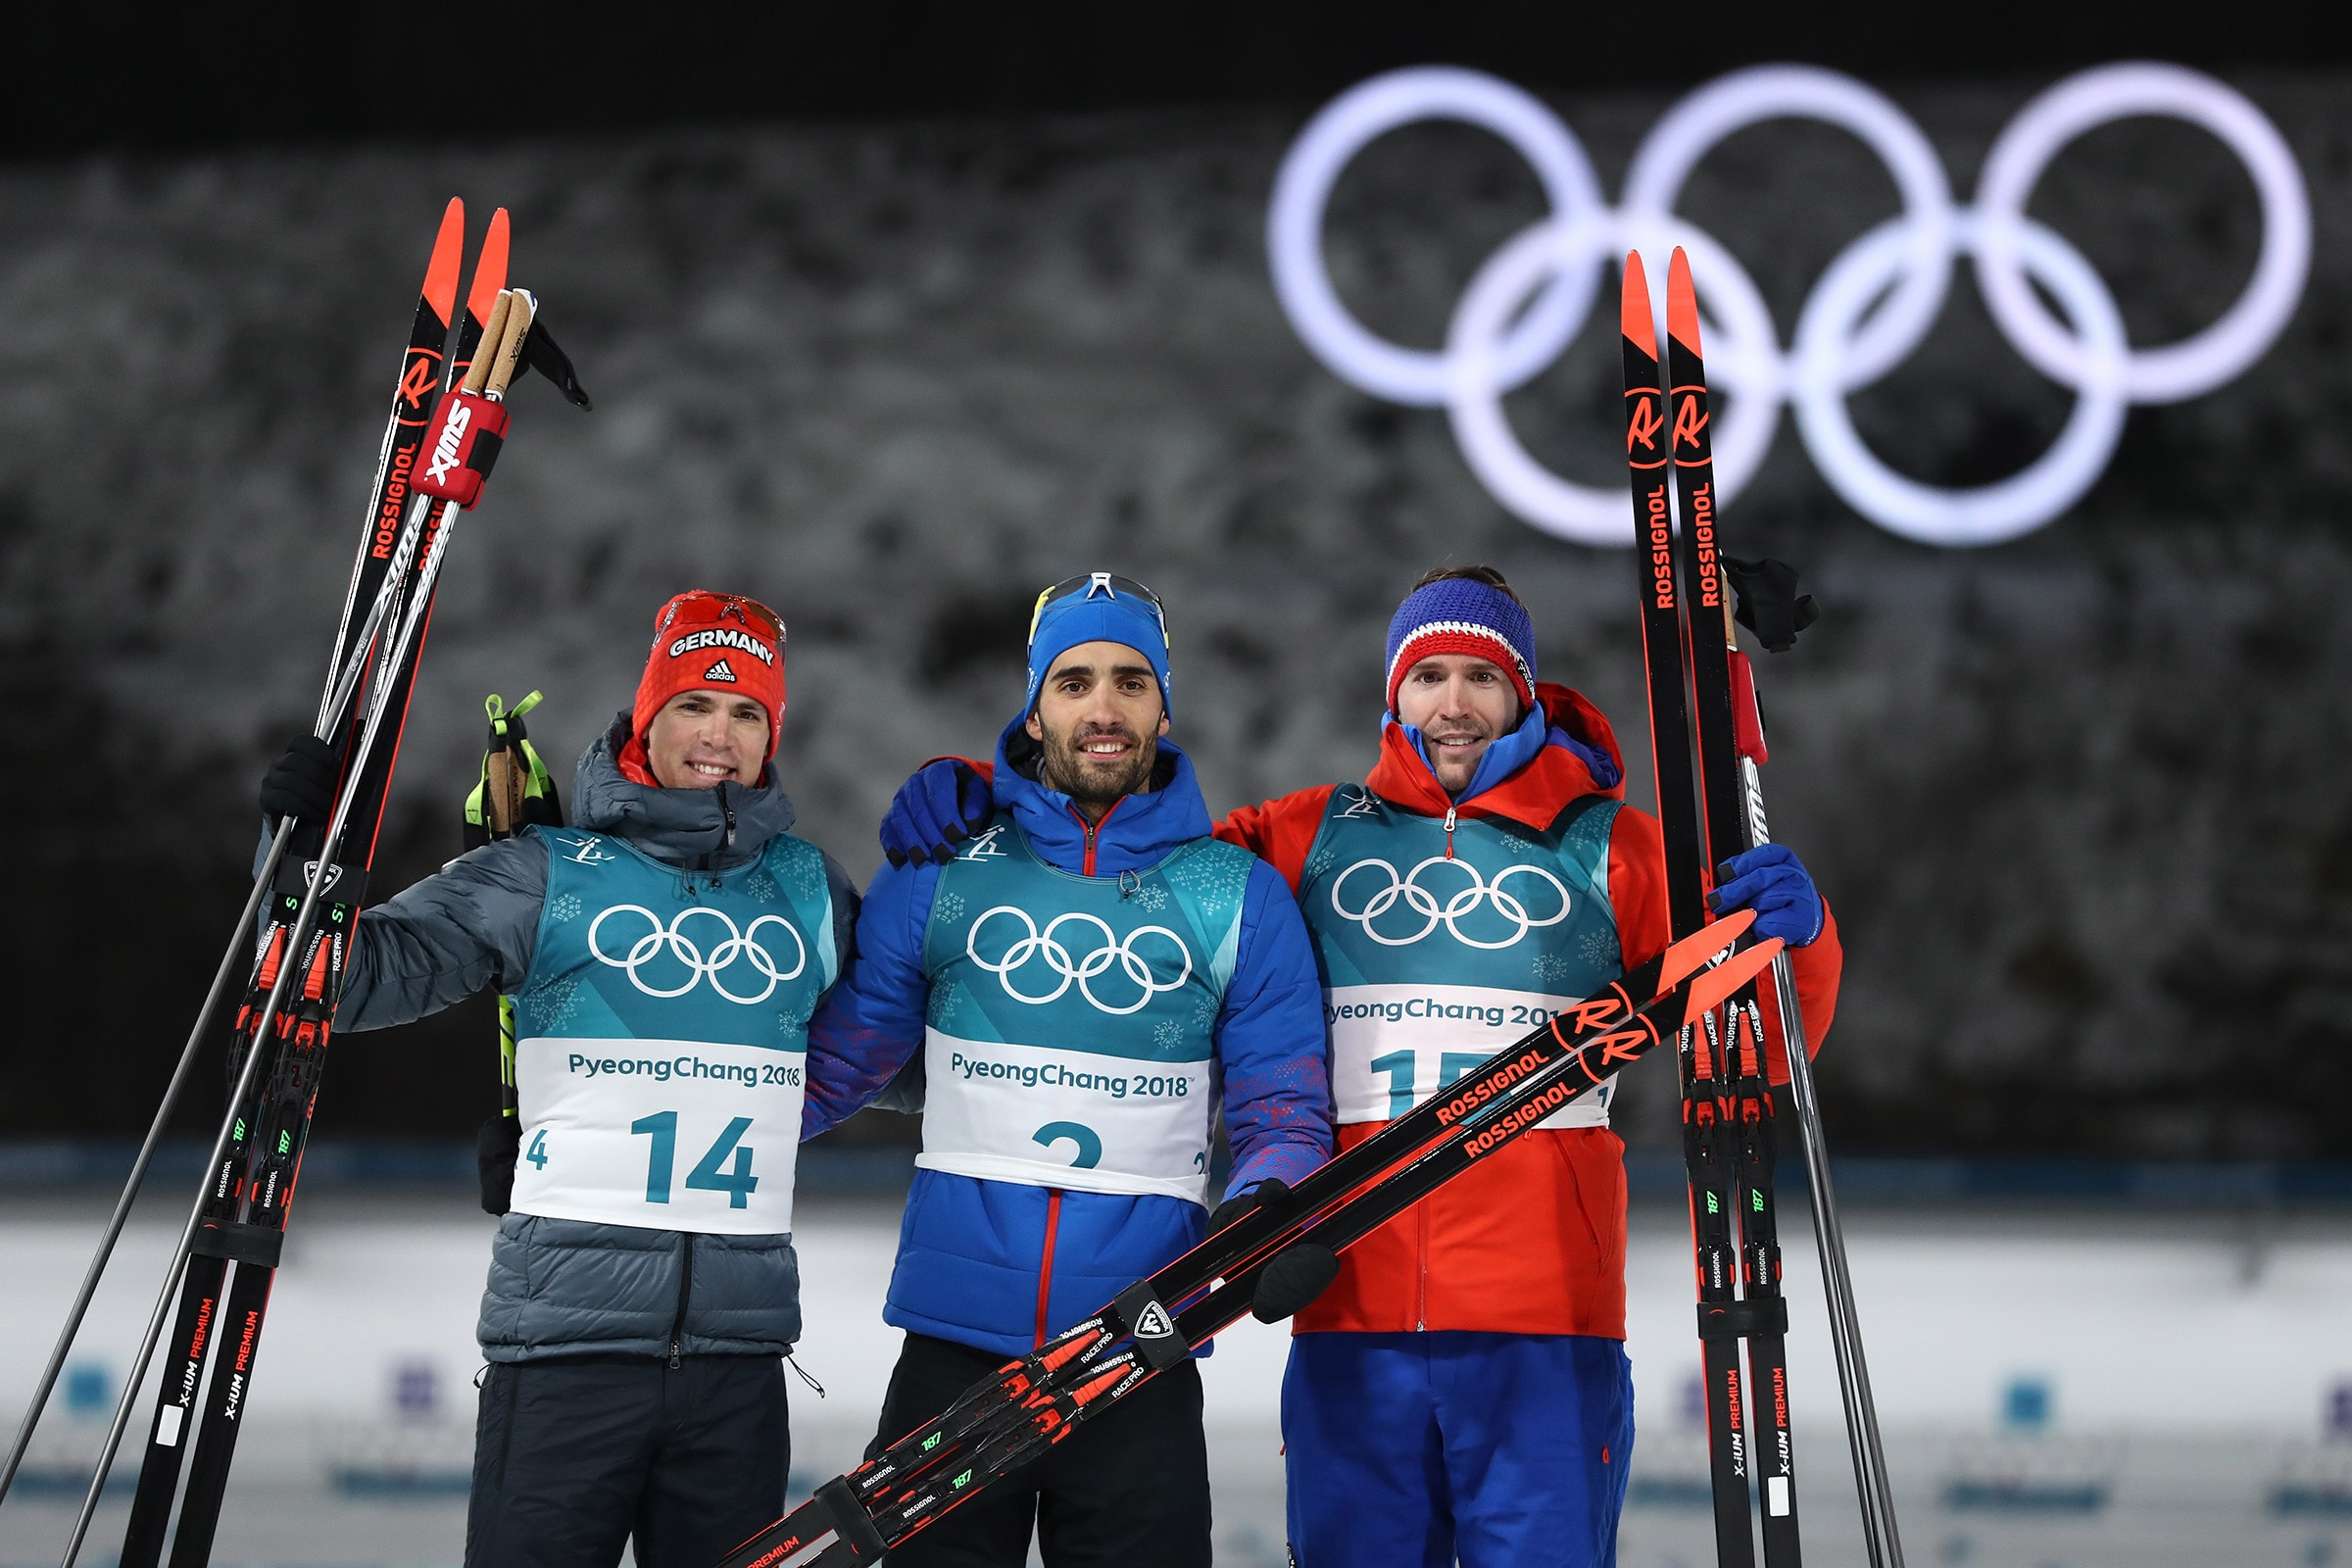 Biathlon - Men's 15km Mass Start